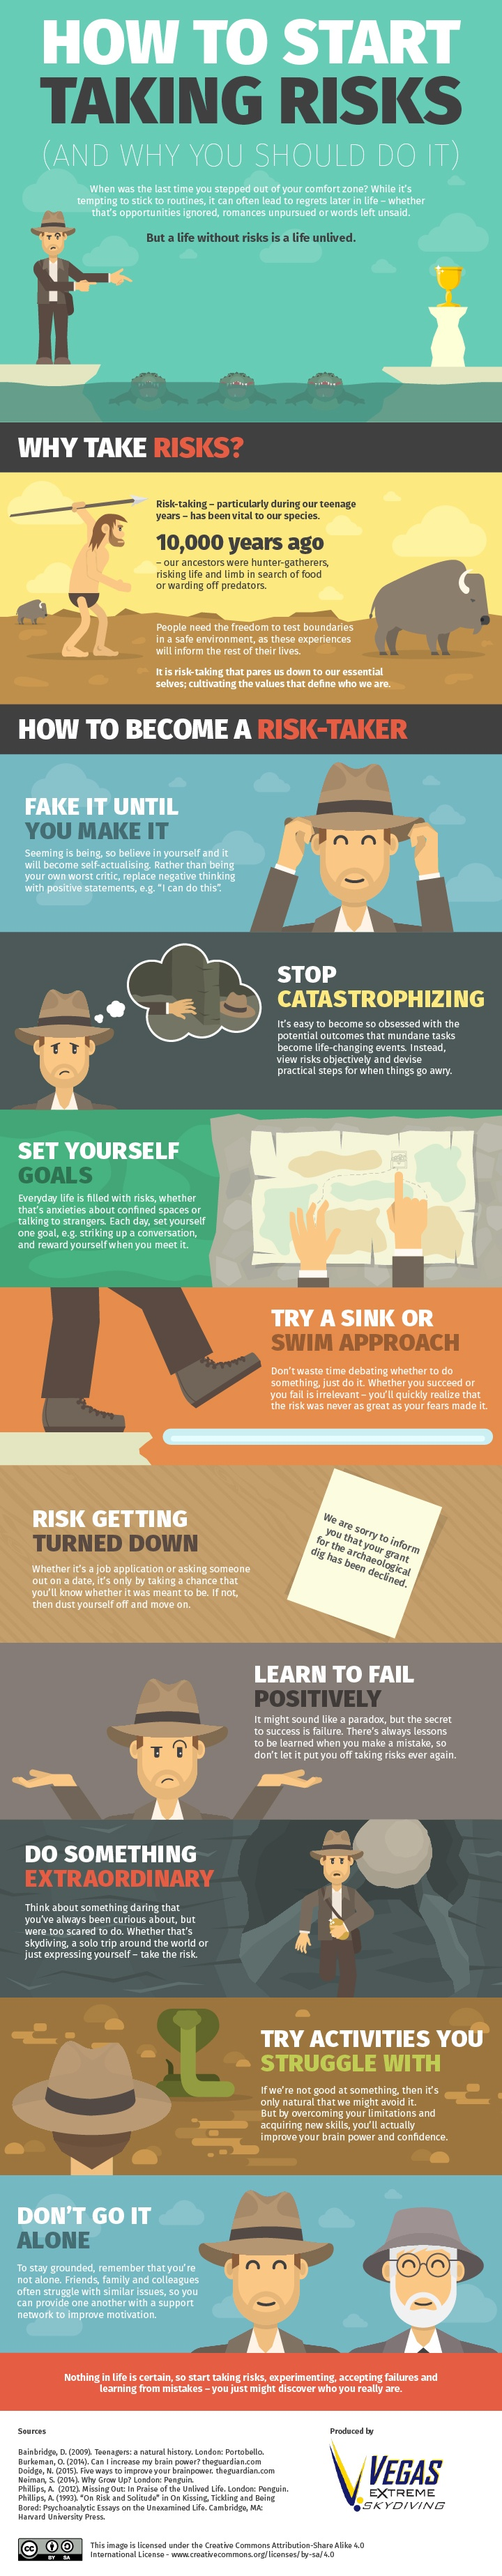 How to Start Taking Risks Infographic